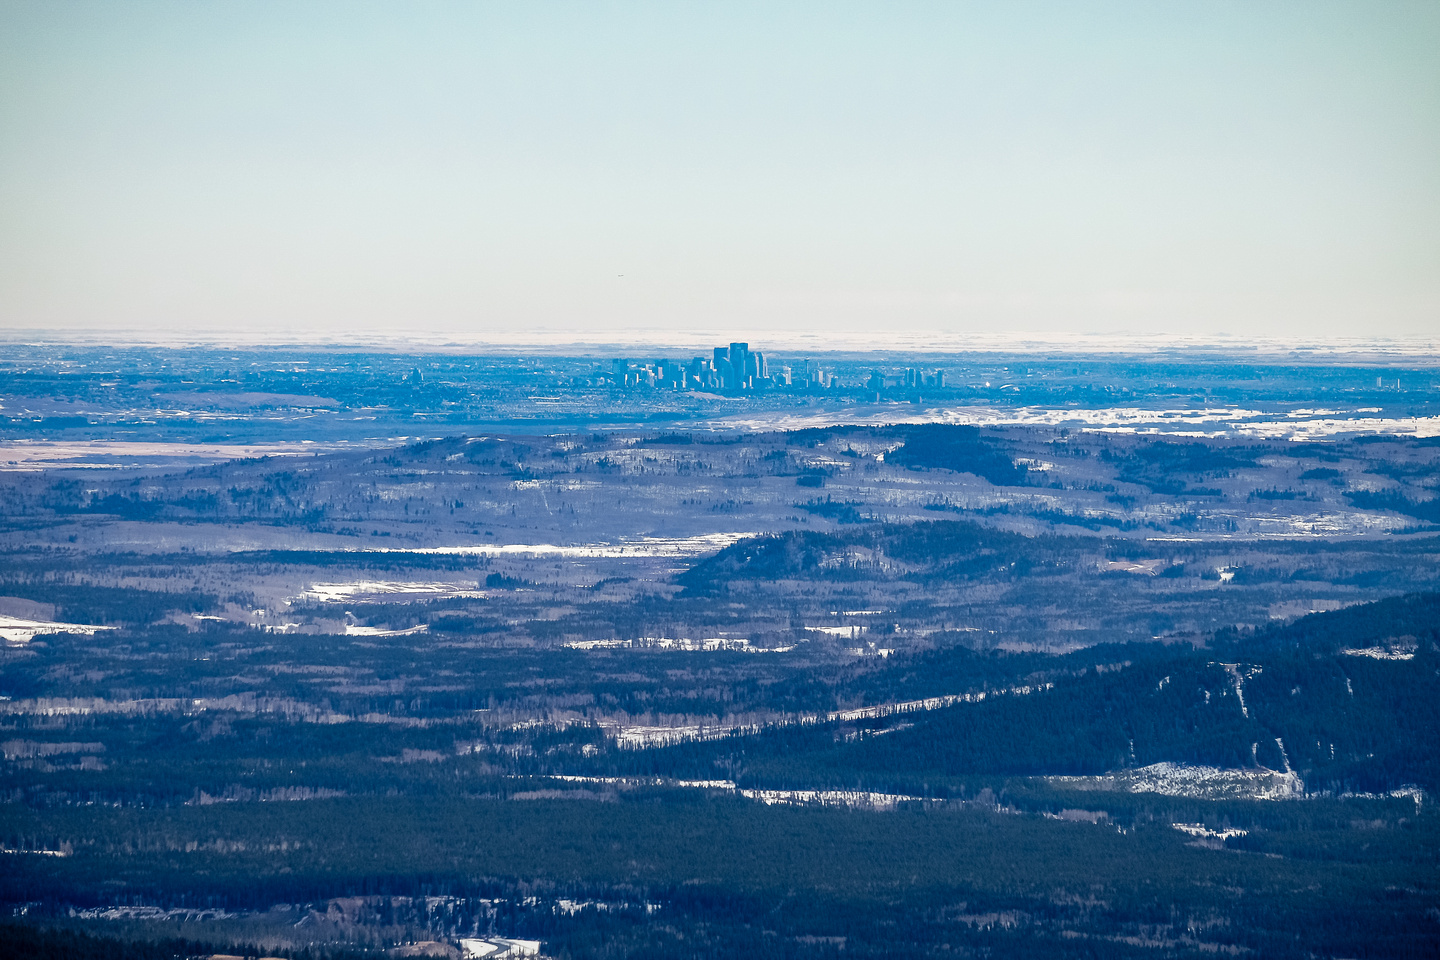 Calgary is clearly visible.